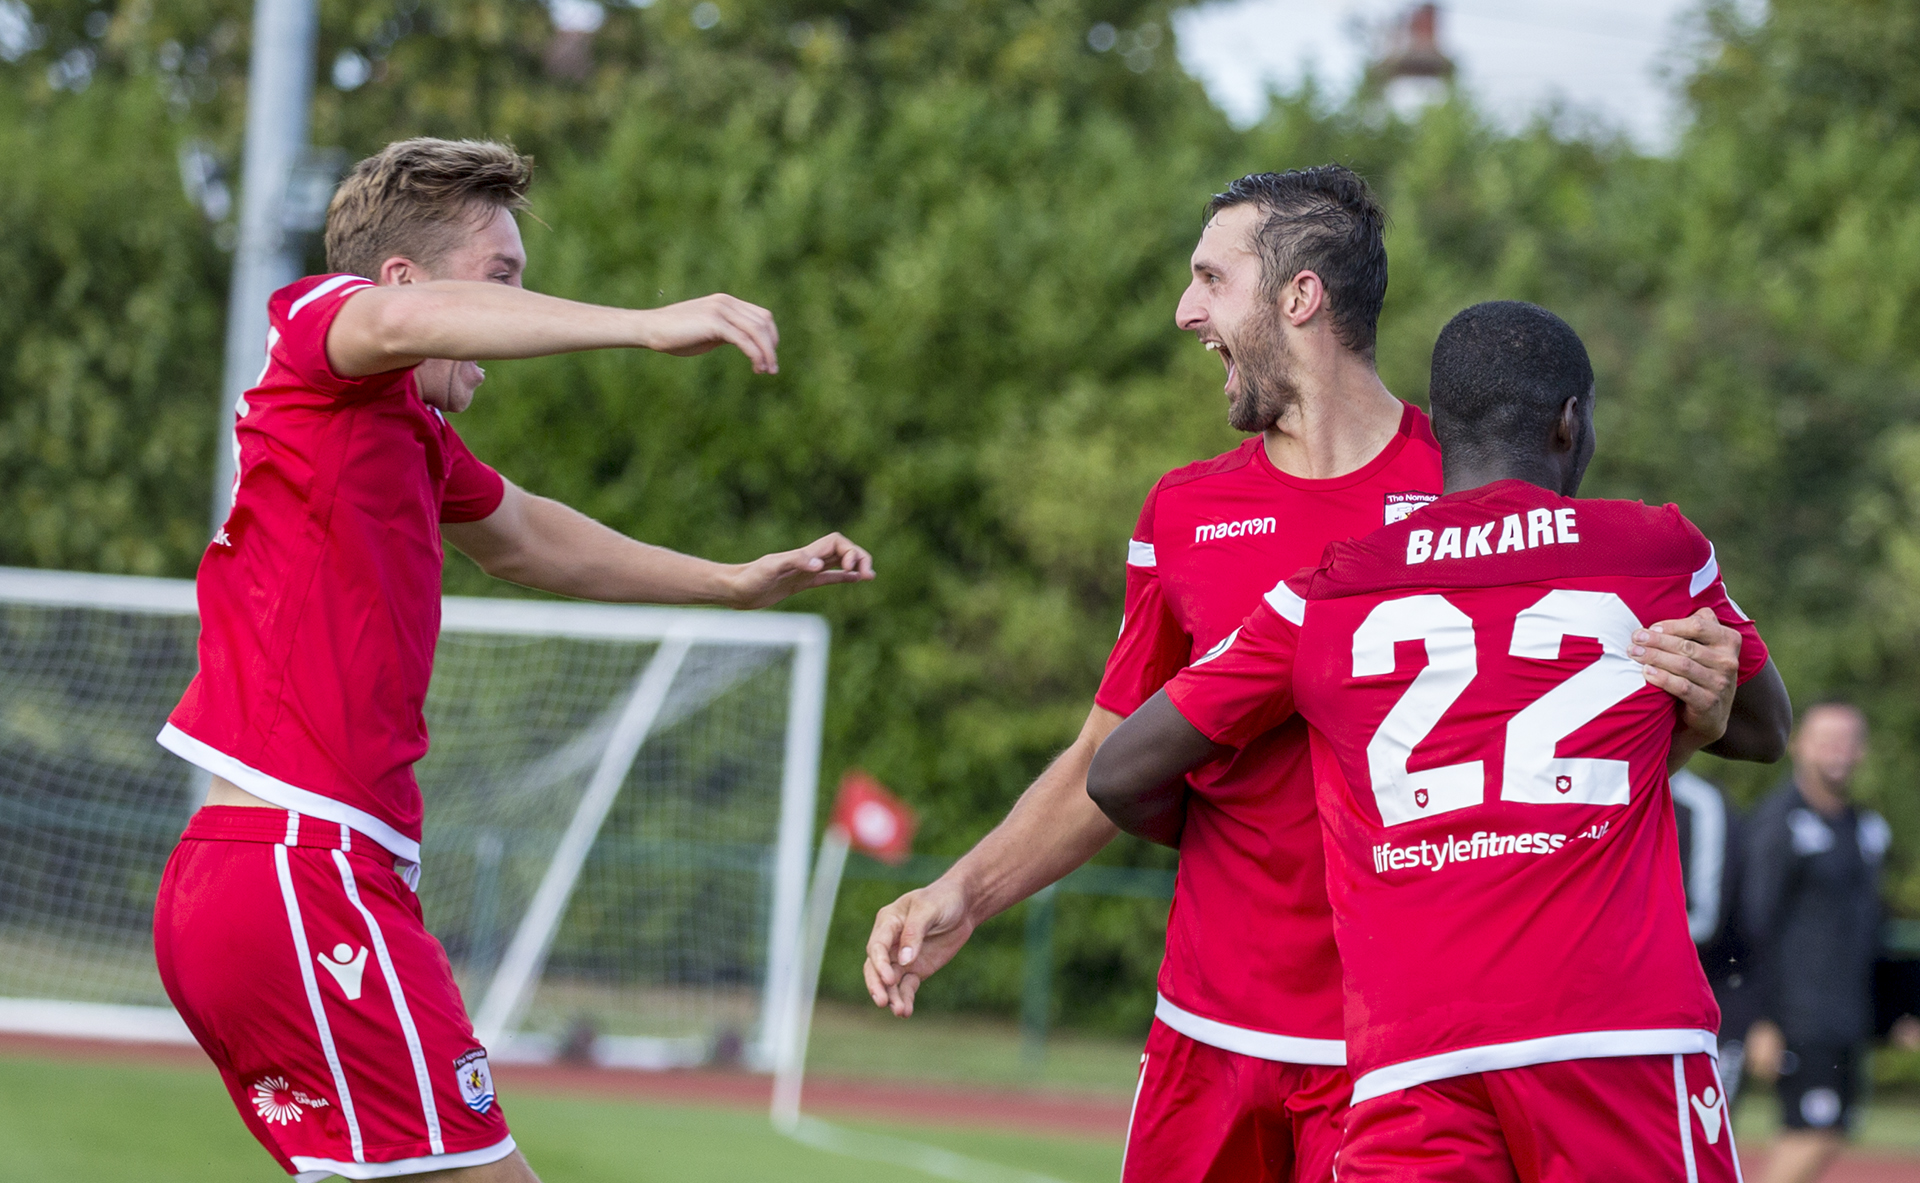 Andy Owens (centre) celebrates with Rob Hughes (left) and Michael Bakare (right) after his goal against TNS © NCM Media